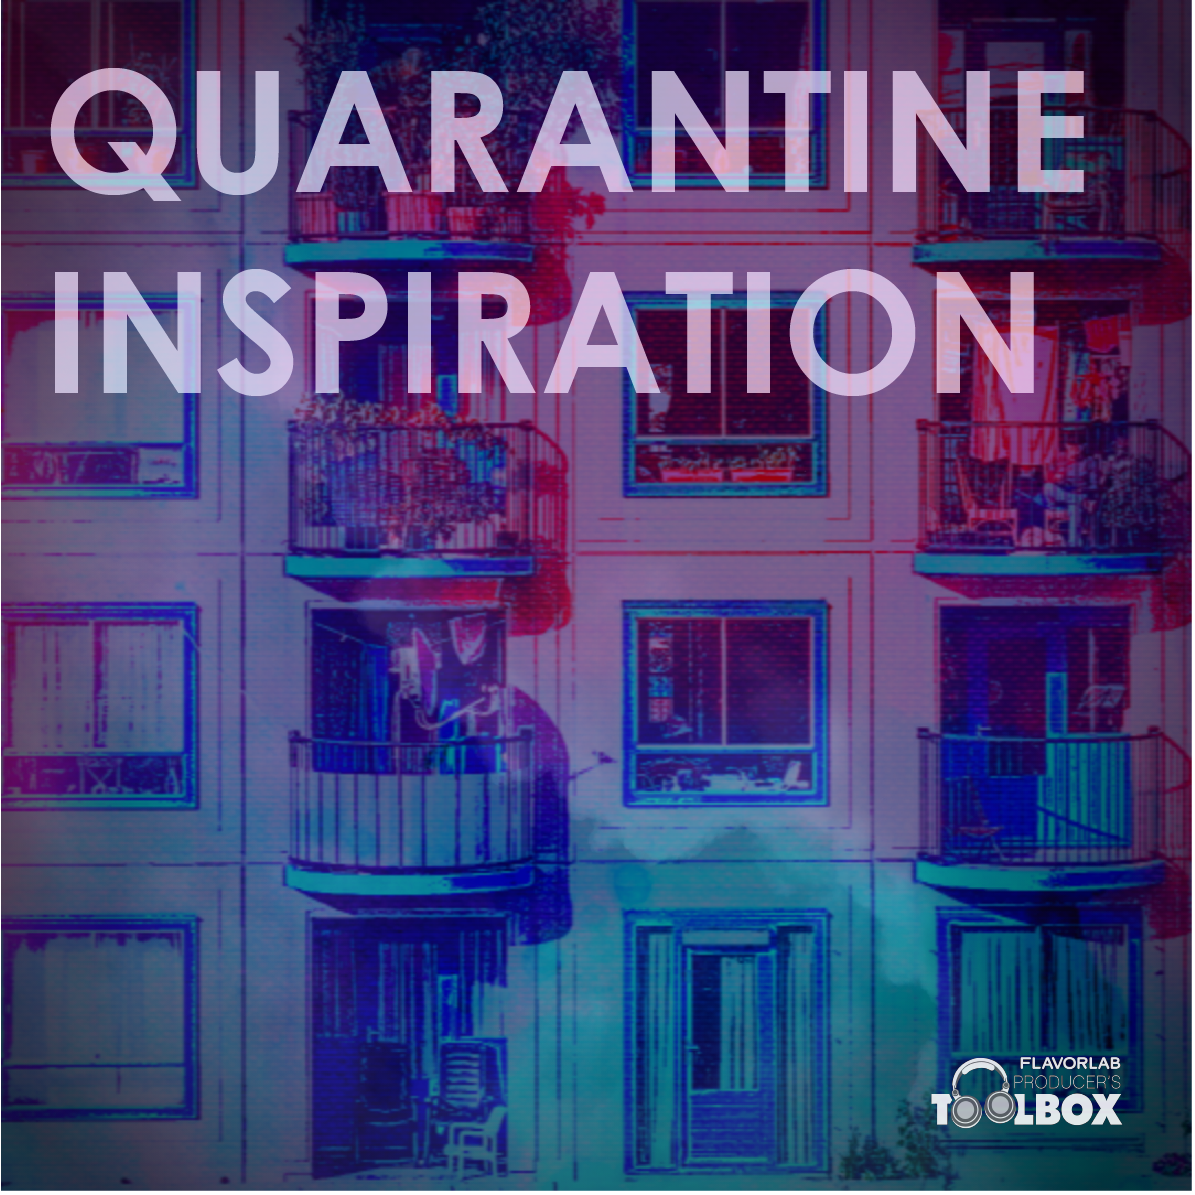 Quarantine Inspiration Playlist: 20% Off Producer's Toolbox Tracks Licensed for COVID-19 Related Projects - Spring 2020 Releases